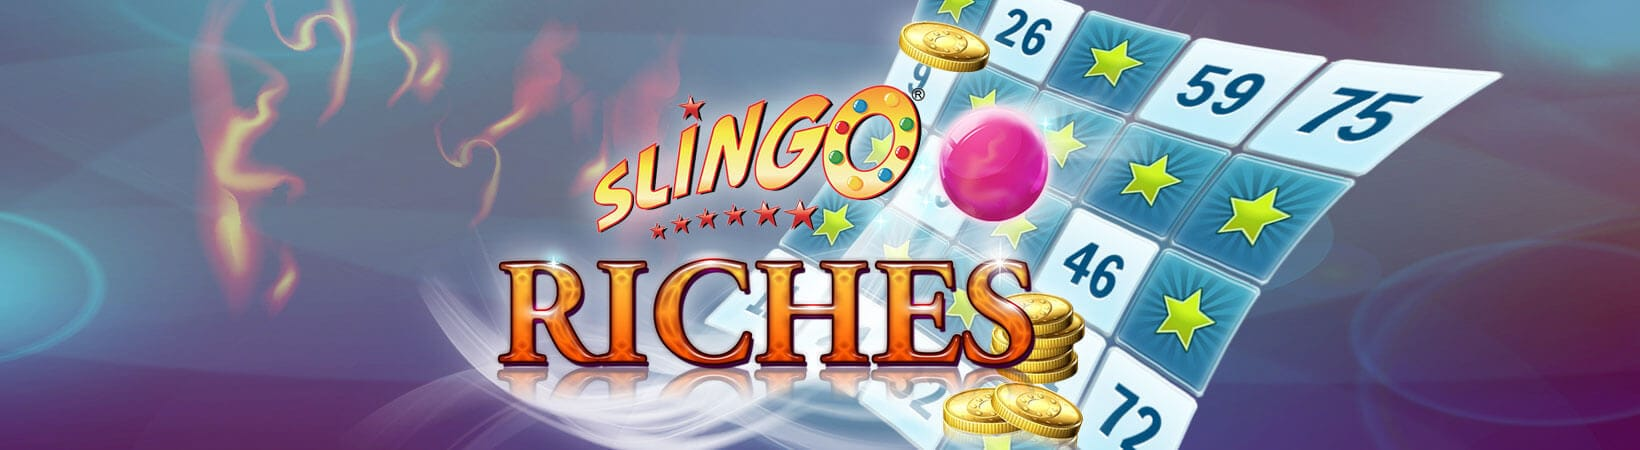 Slingo Riches Review